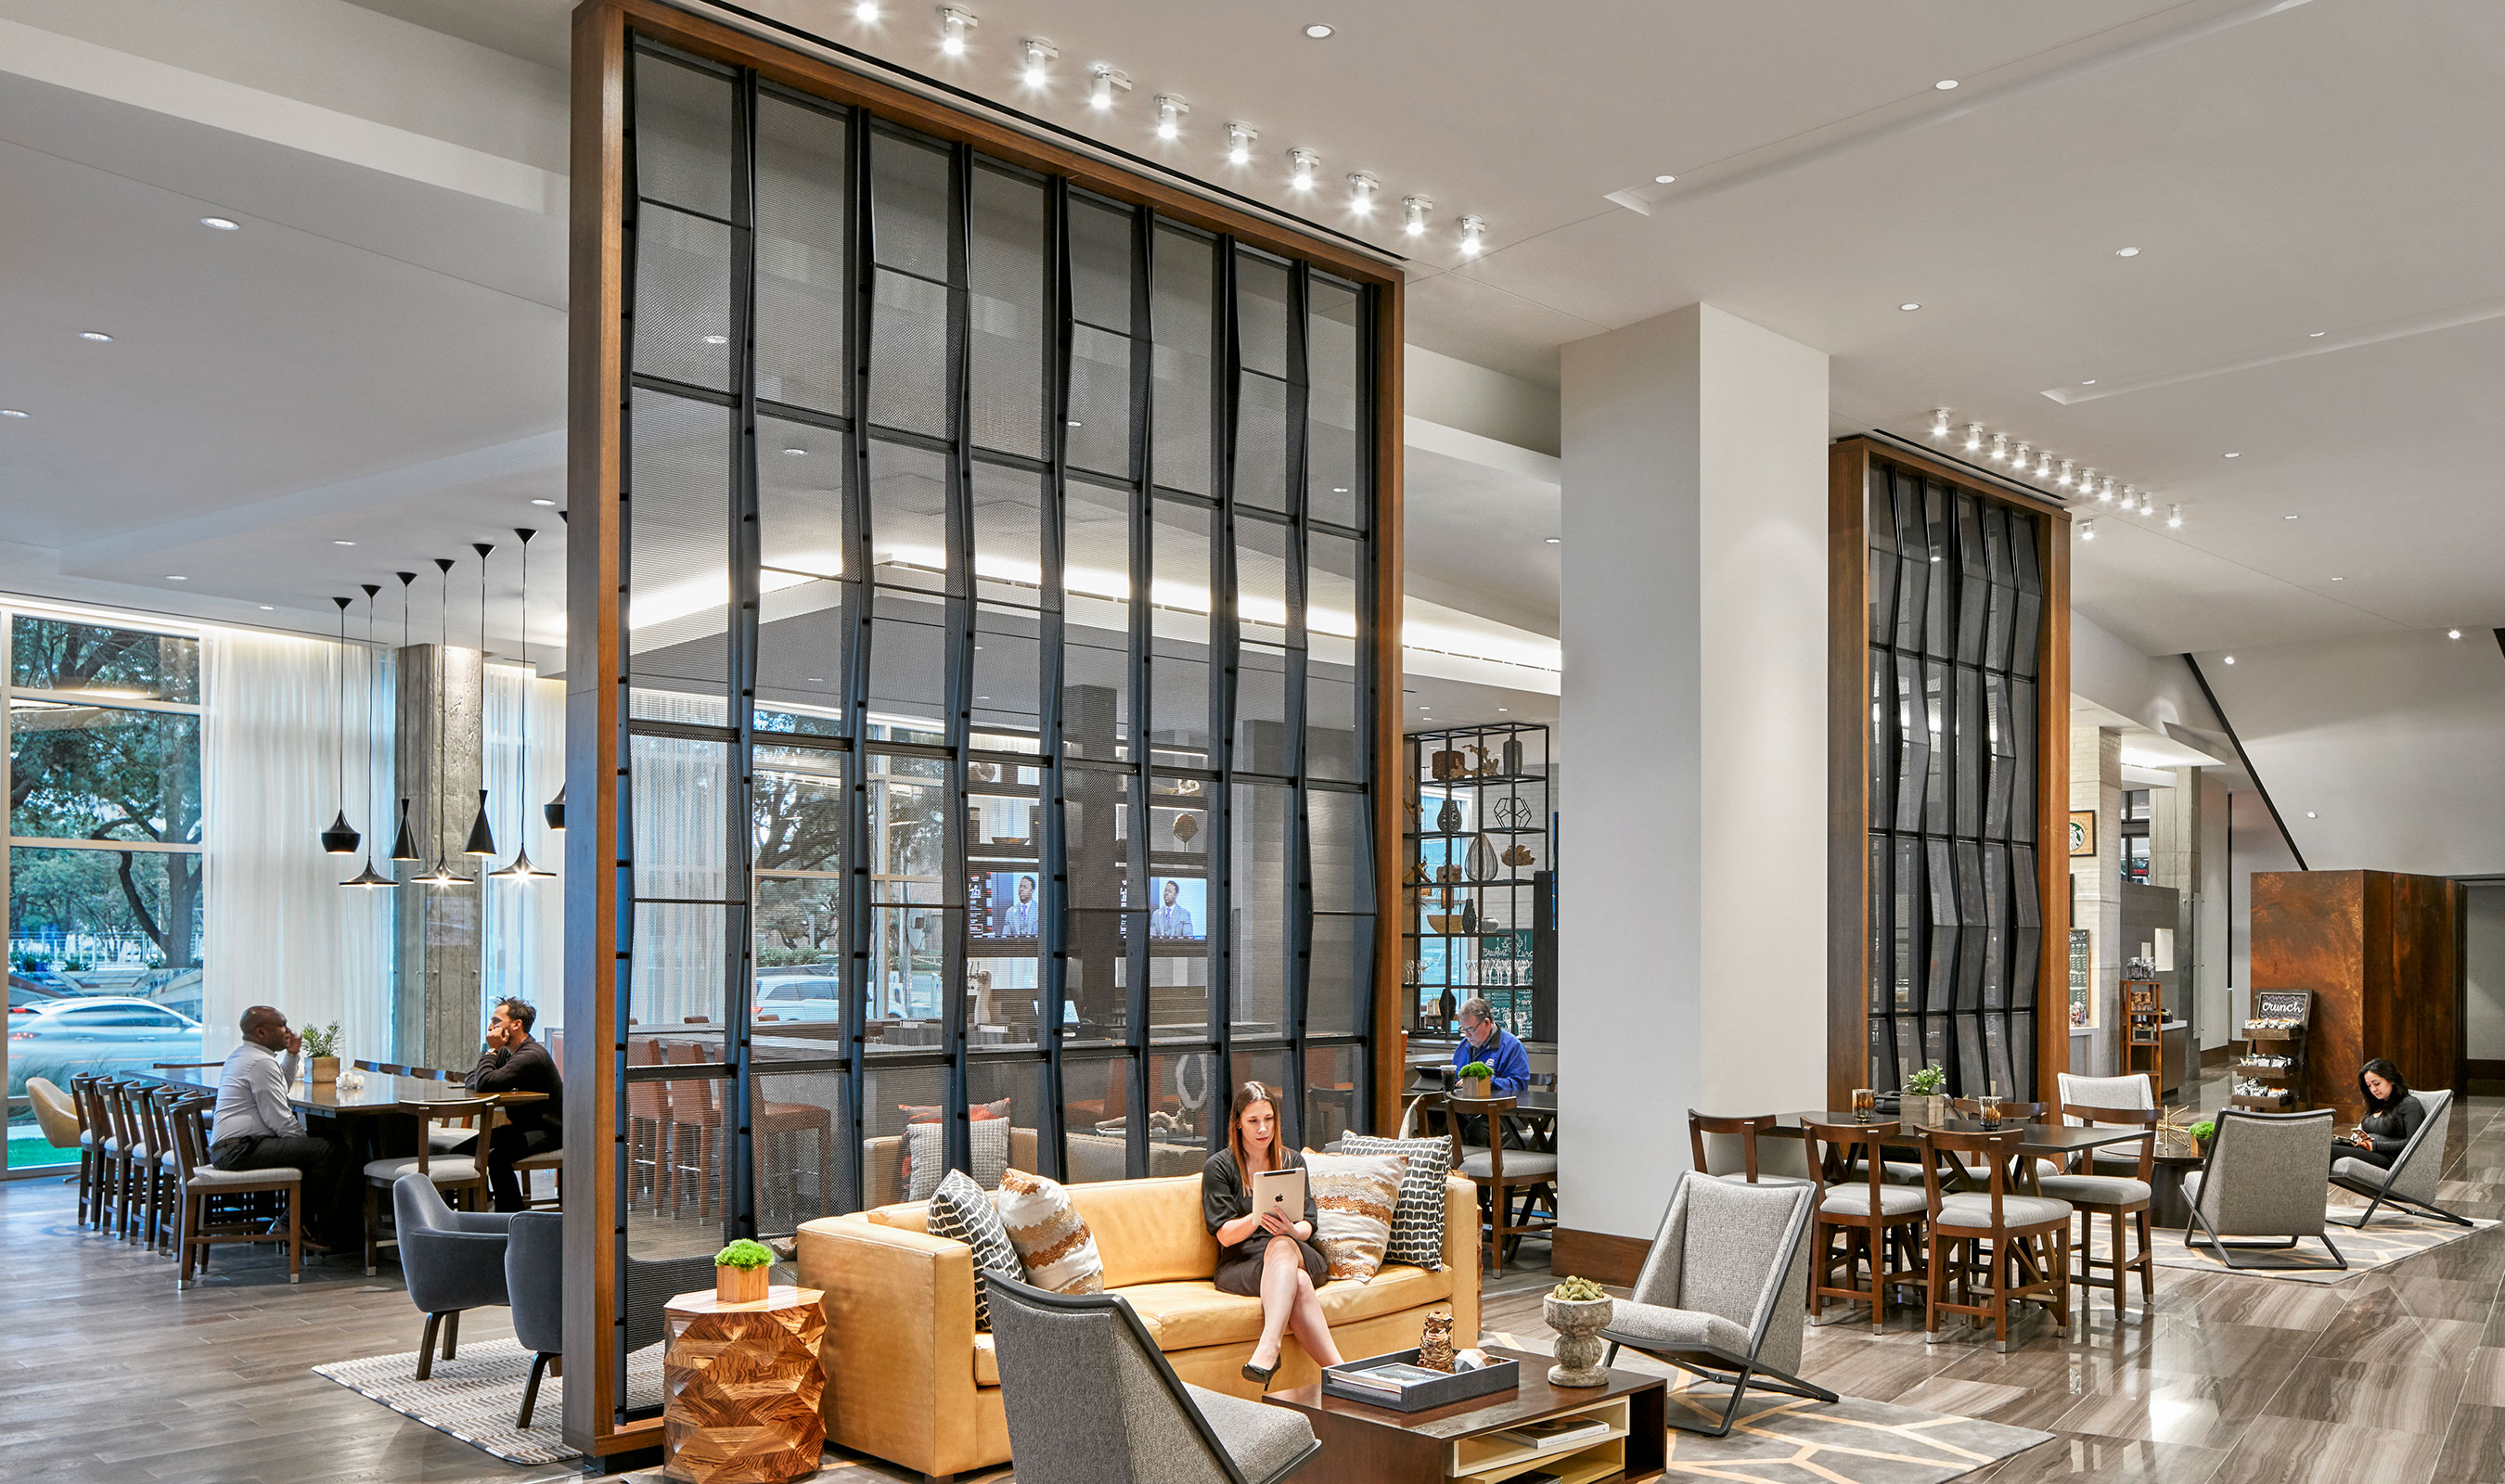 The open, multi-function lobby serves as a workplace, social gathering area and relaxing living room with a bar, lounge, market and formal dining divided my a screen made from Banker Wire architectural wire mesh.